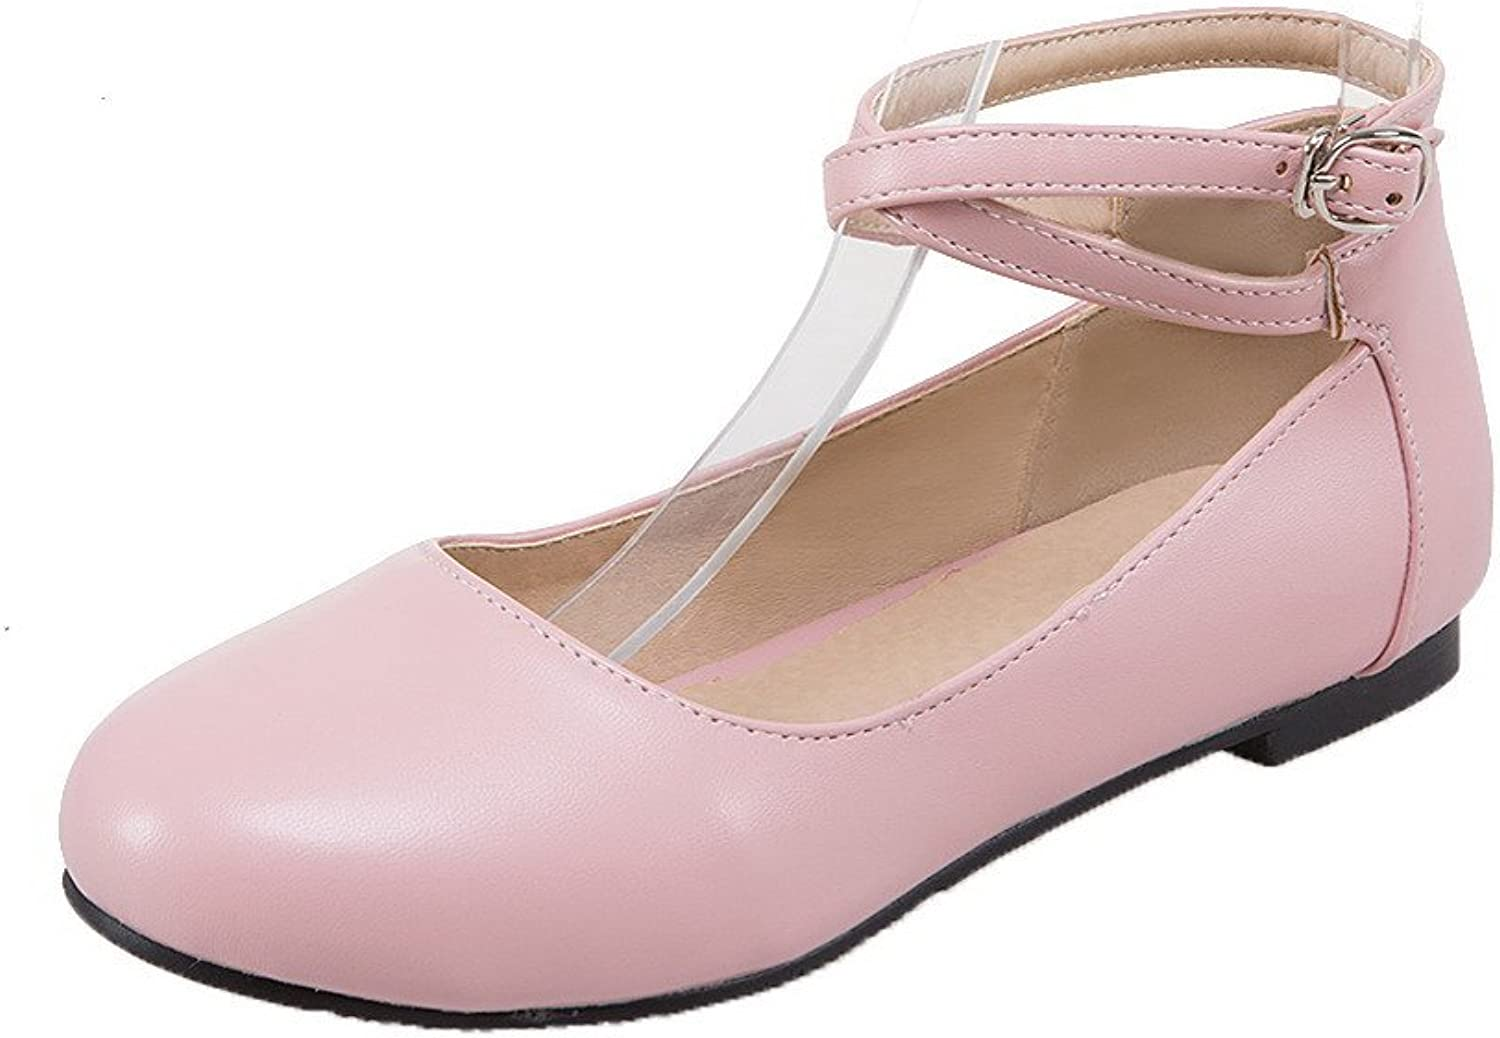 WeiPoot Women's Solid PU No-Heel Buckle Round Closed Toe Pumps-shoes